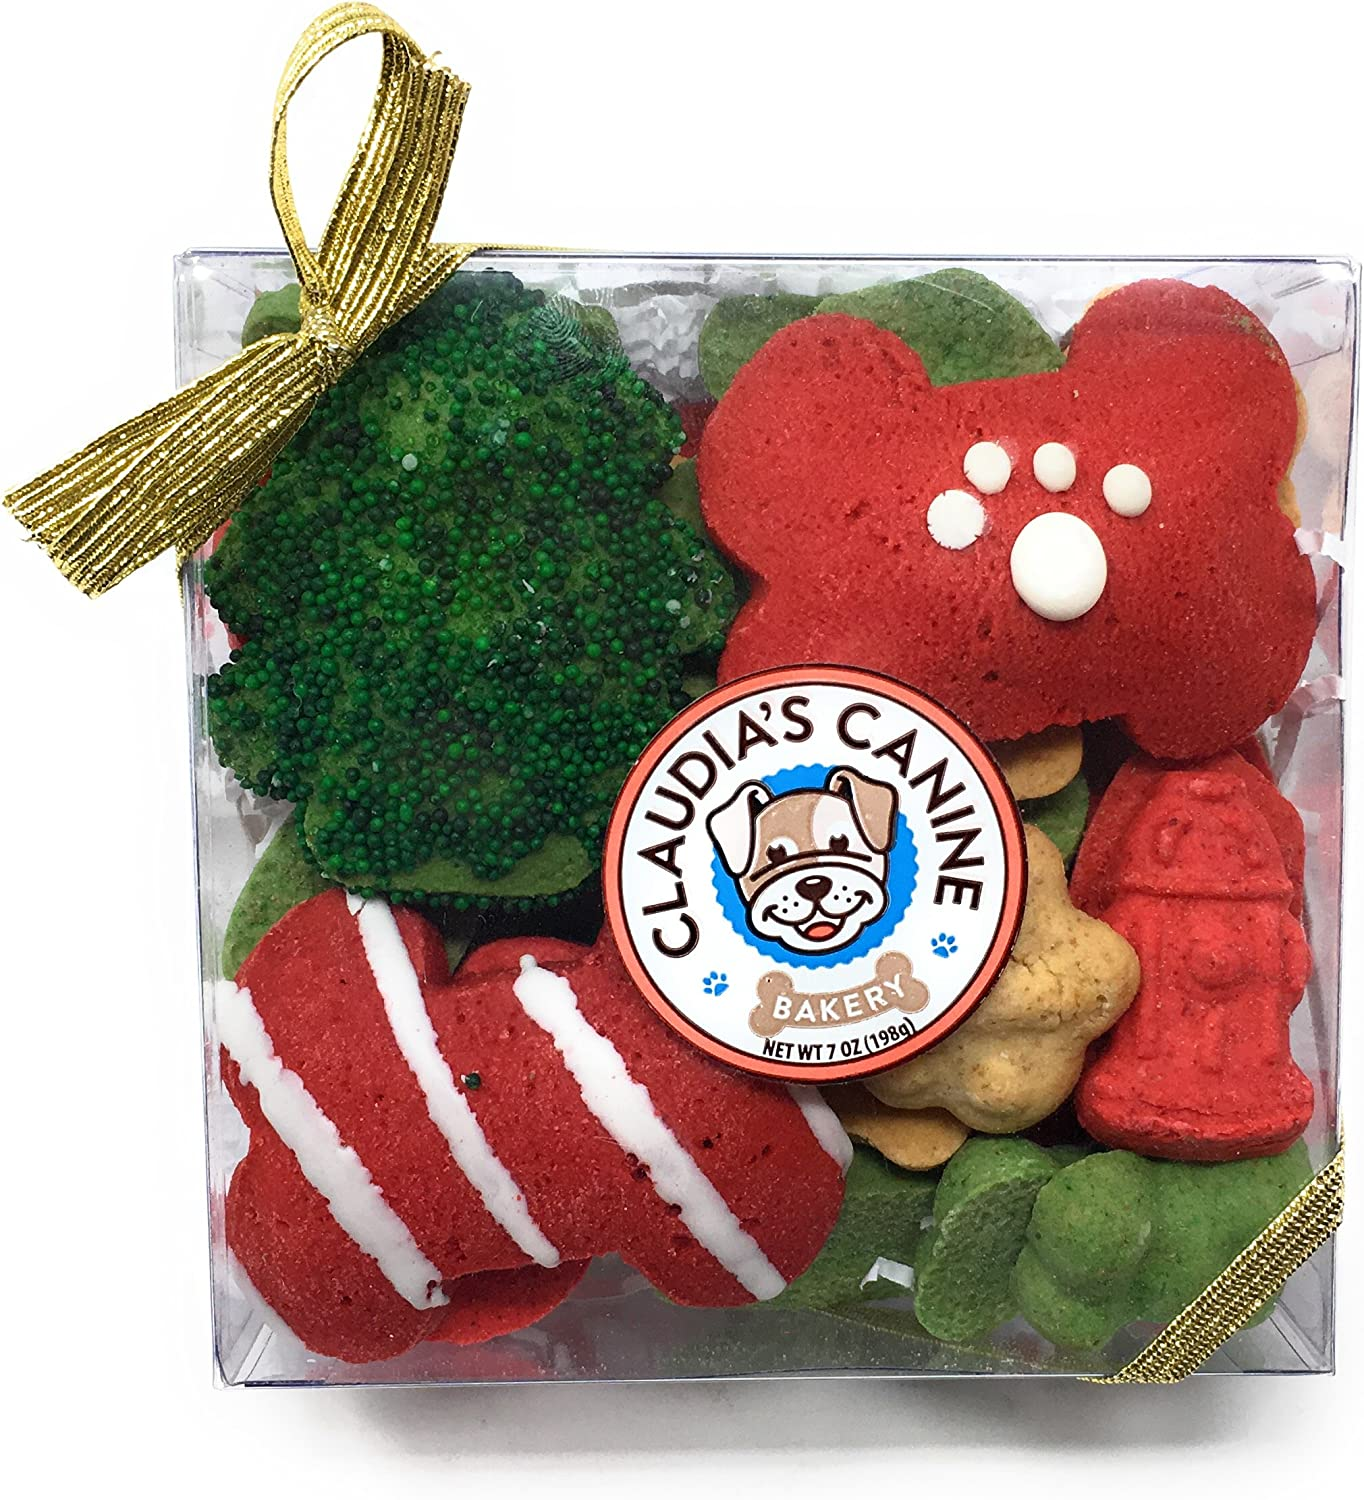 Claudia's Canine Gourmet Christmas Dog Box Treat Gift Ranking TOP1 Max's ! Super beauty product restock quality top! Hol